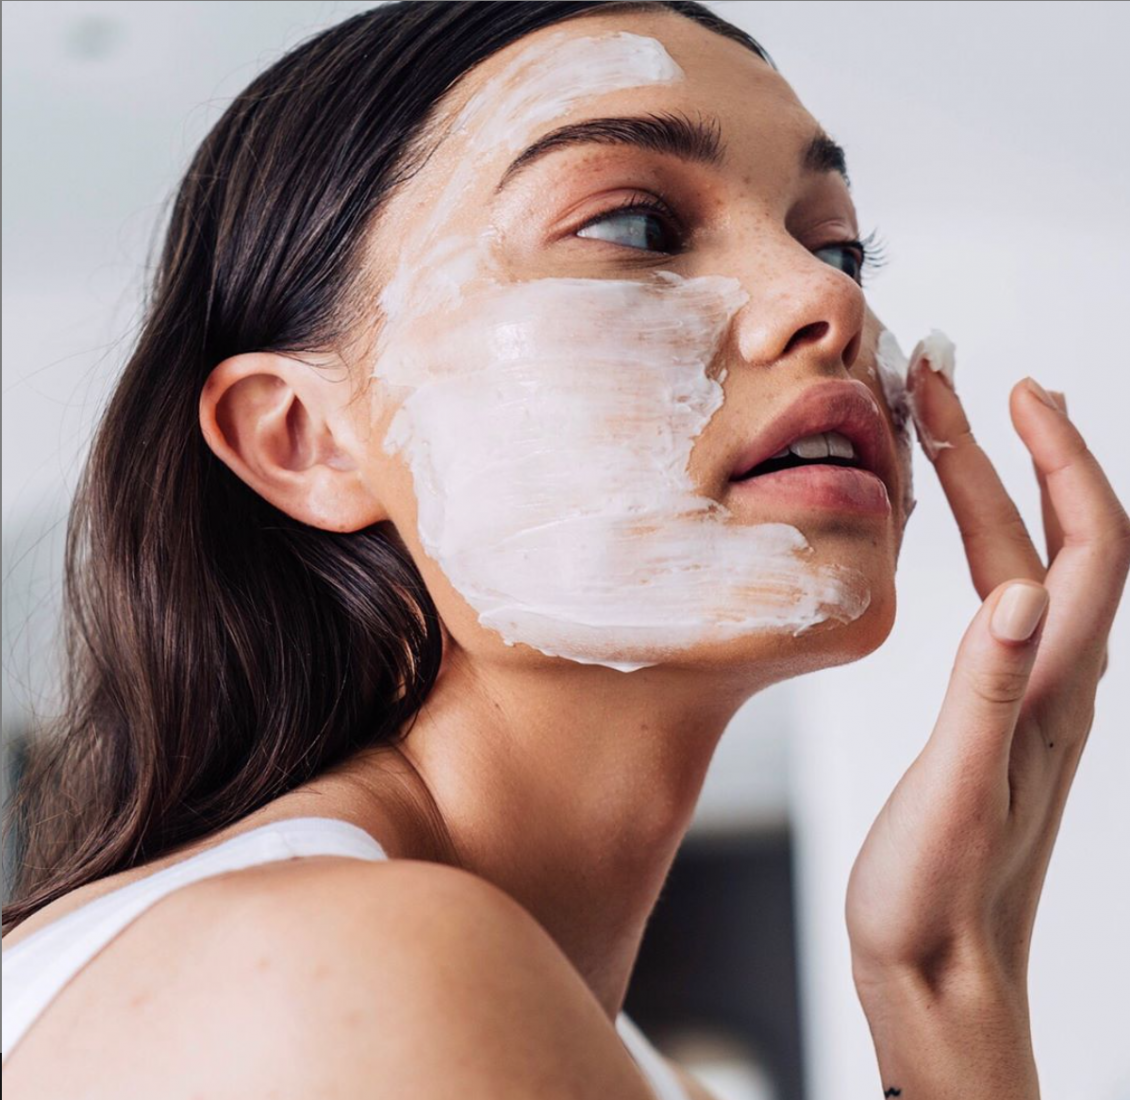 Spring Skin Care: Winter Skin Care That Will Keep You Glowing Through Spring